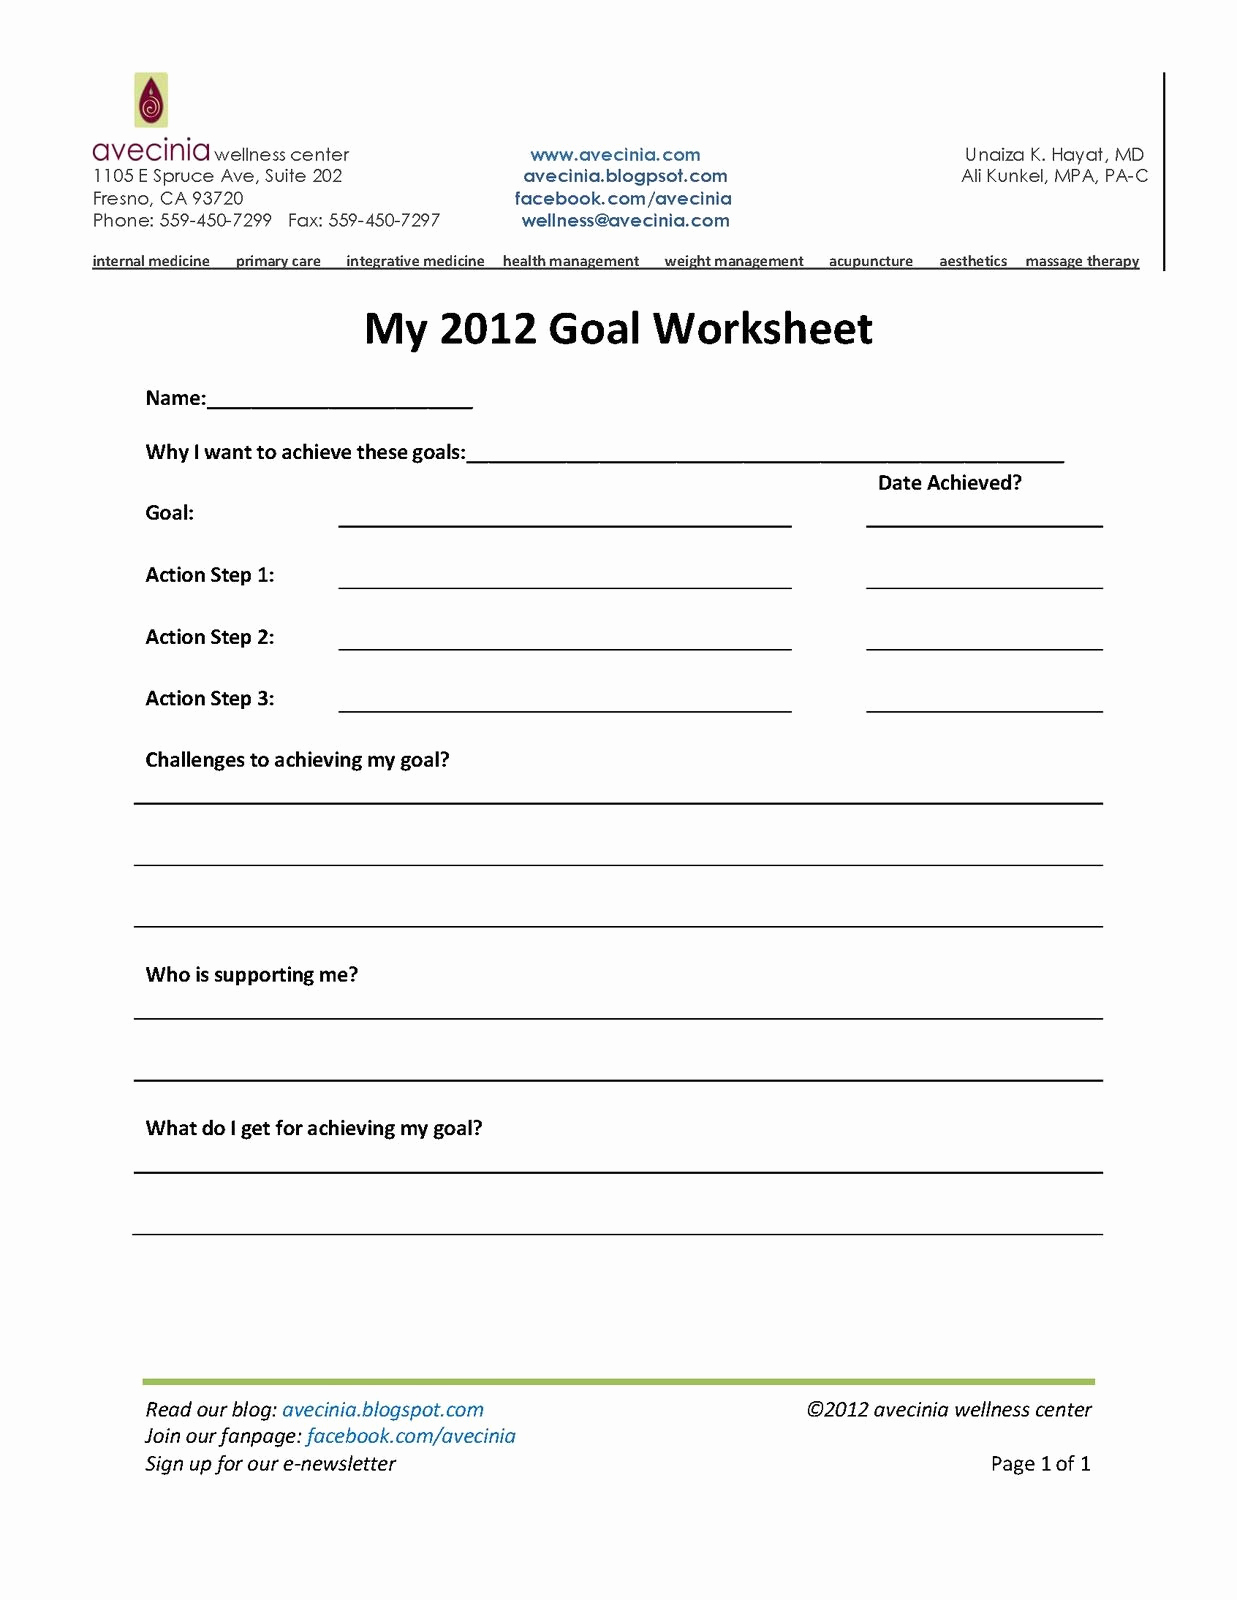 Middle School Health Worksheets Beautiful 20 Middle School Health Worksheets Pdf